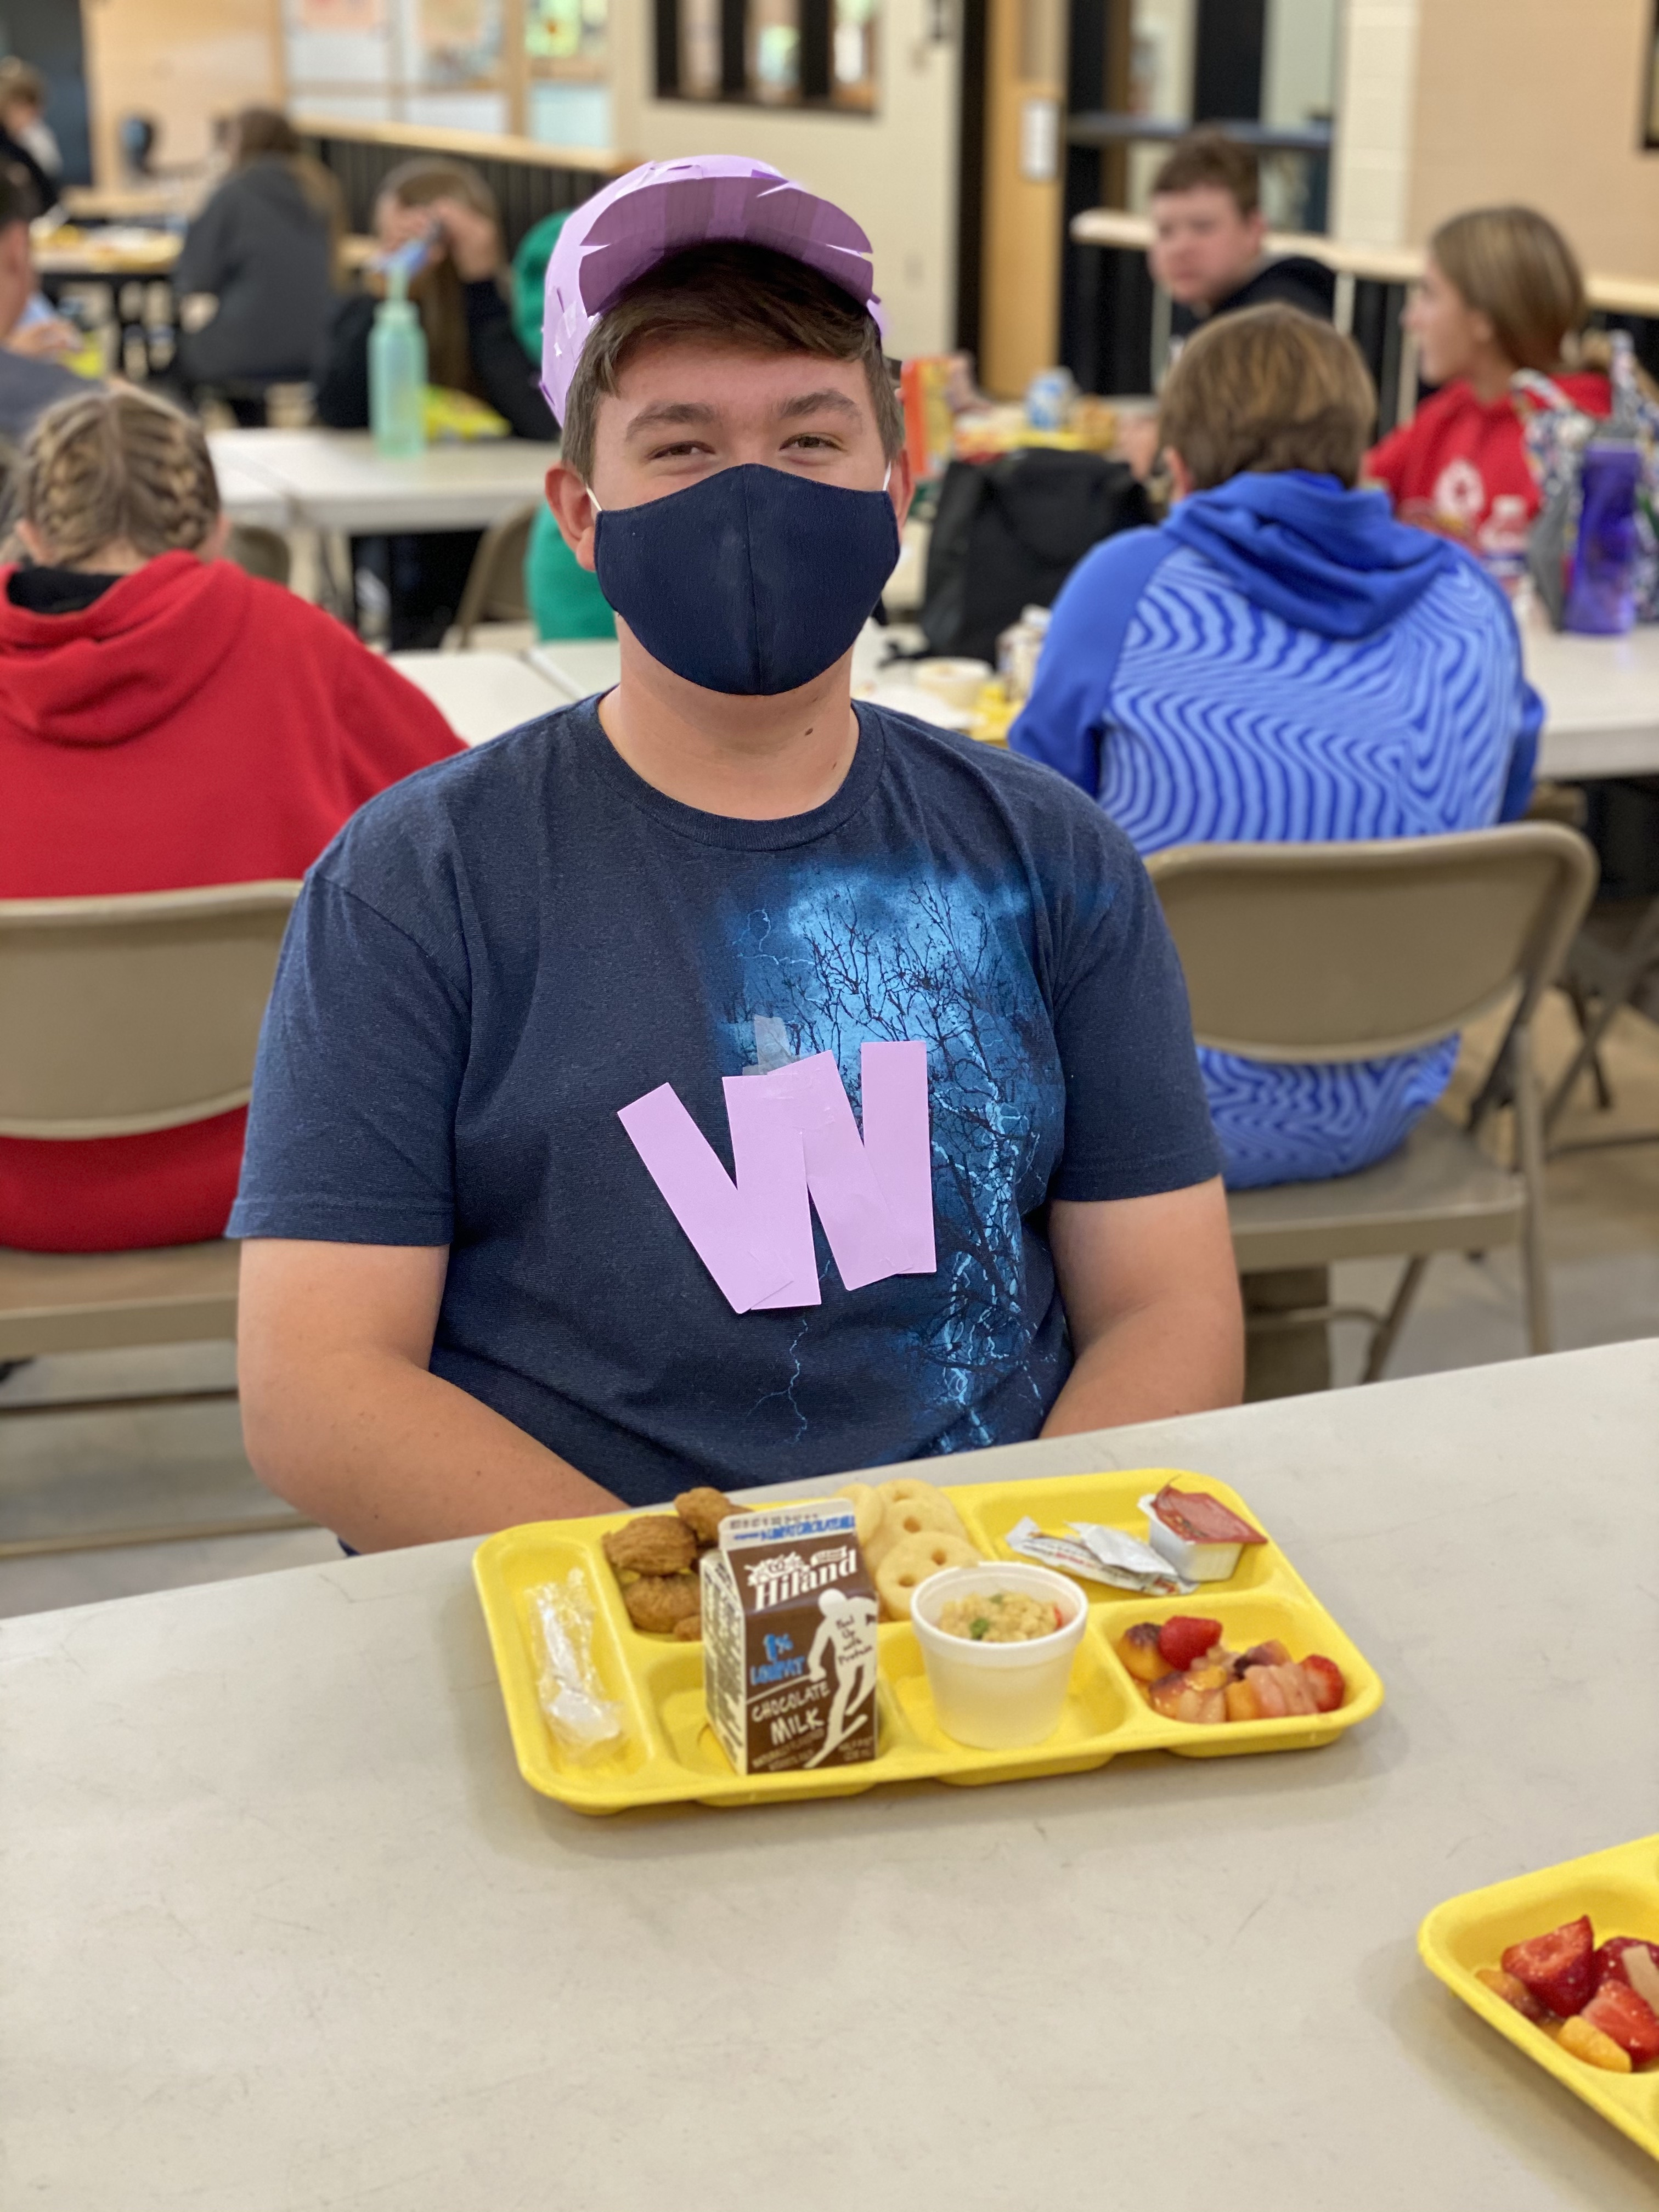 Student Eating Lunch